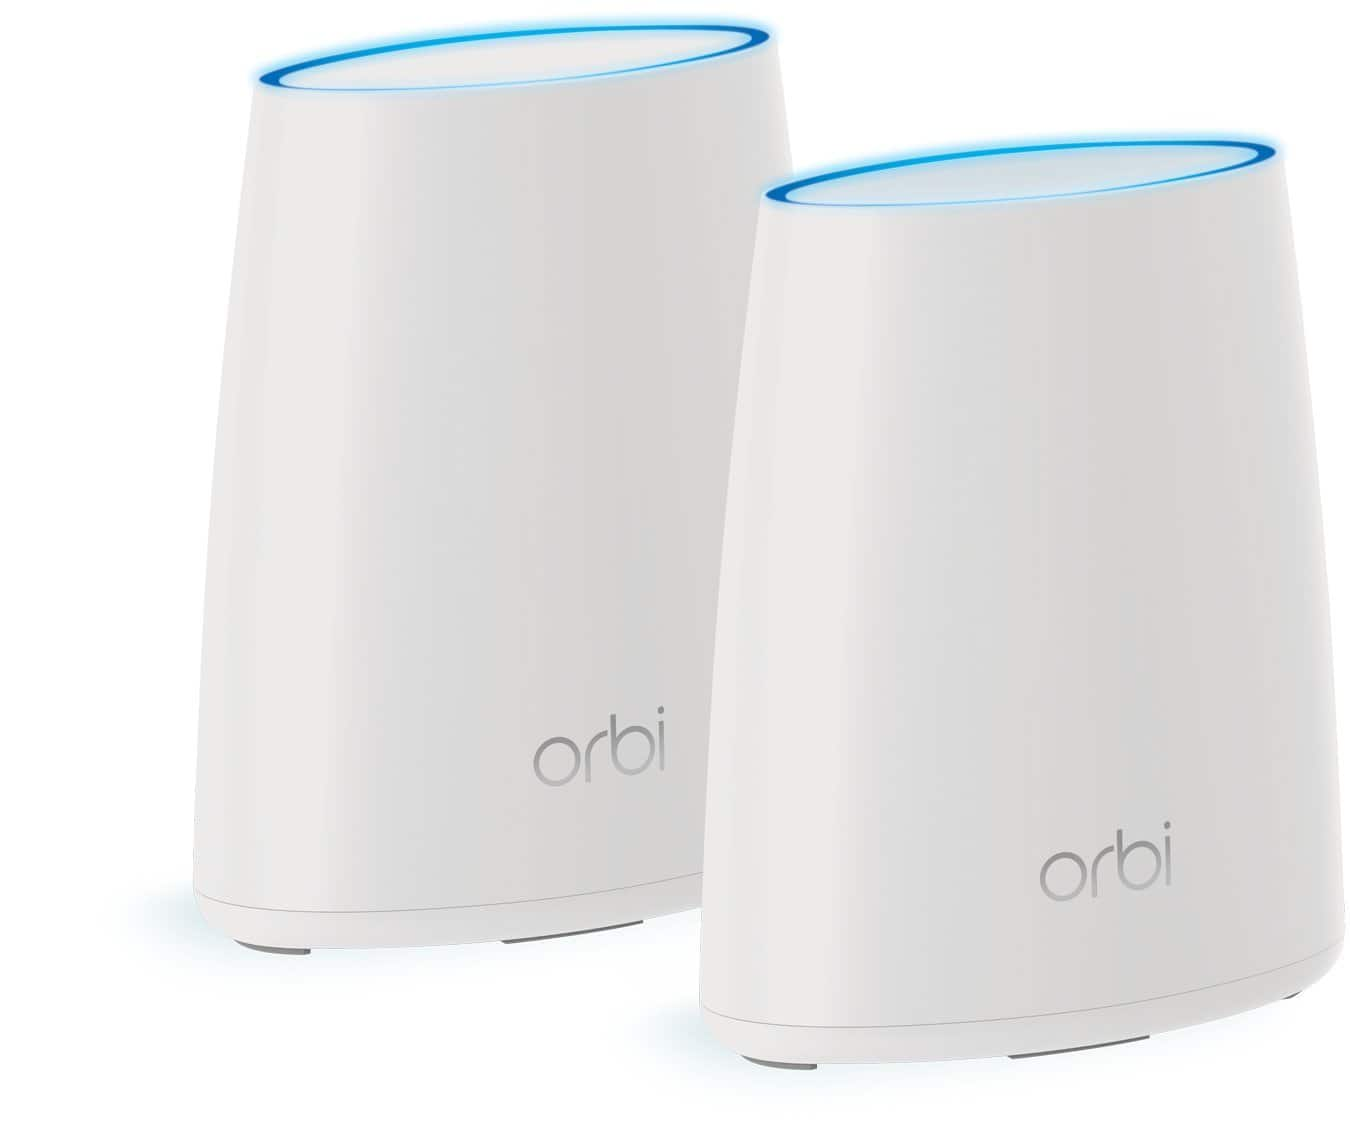 Use Promo Code 40OFFORBI on Amazon.com for $40 Off Orbi RBK40 & RBK50 Home WiFi Systems